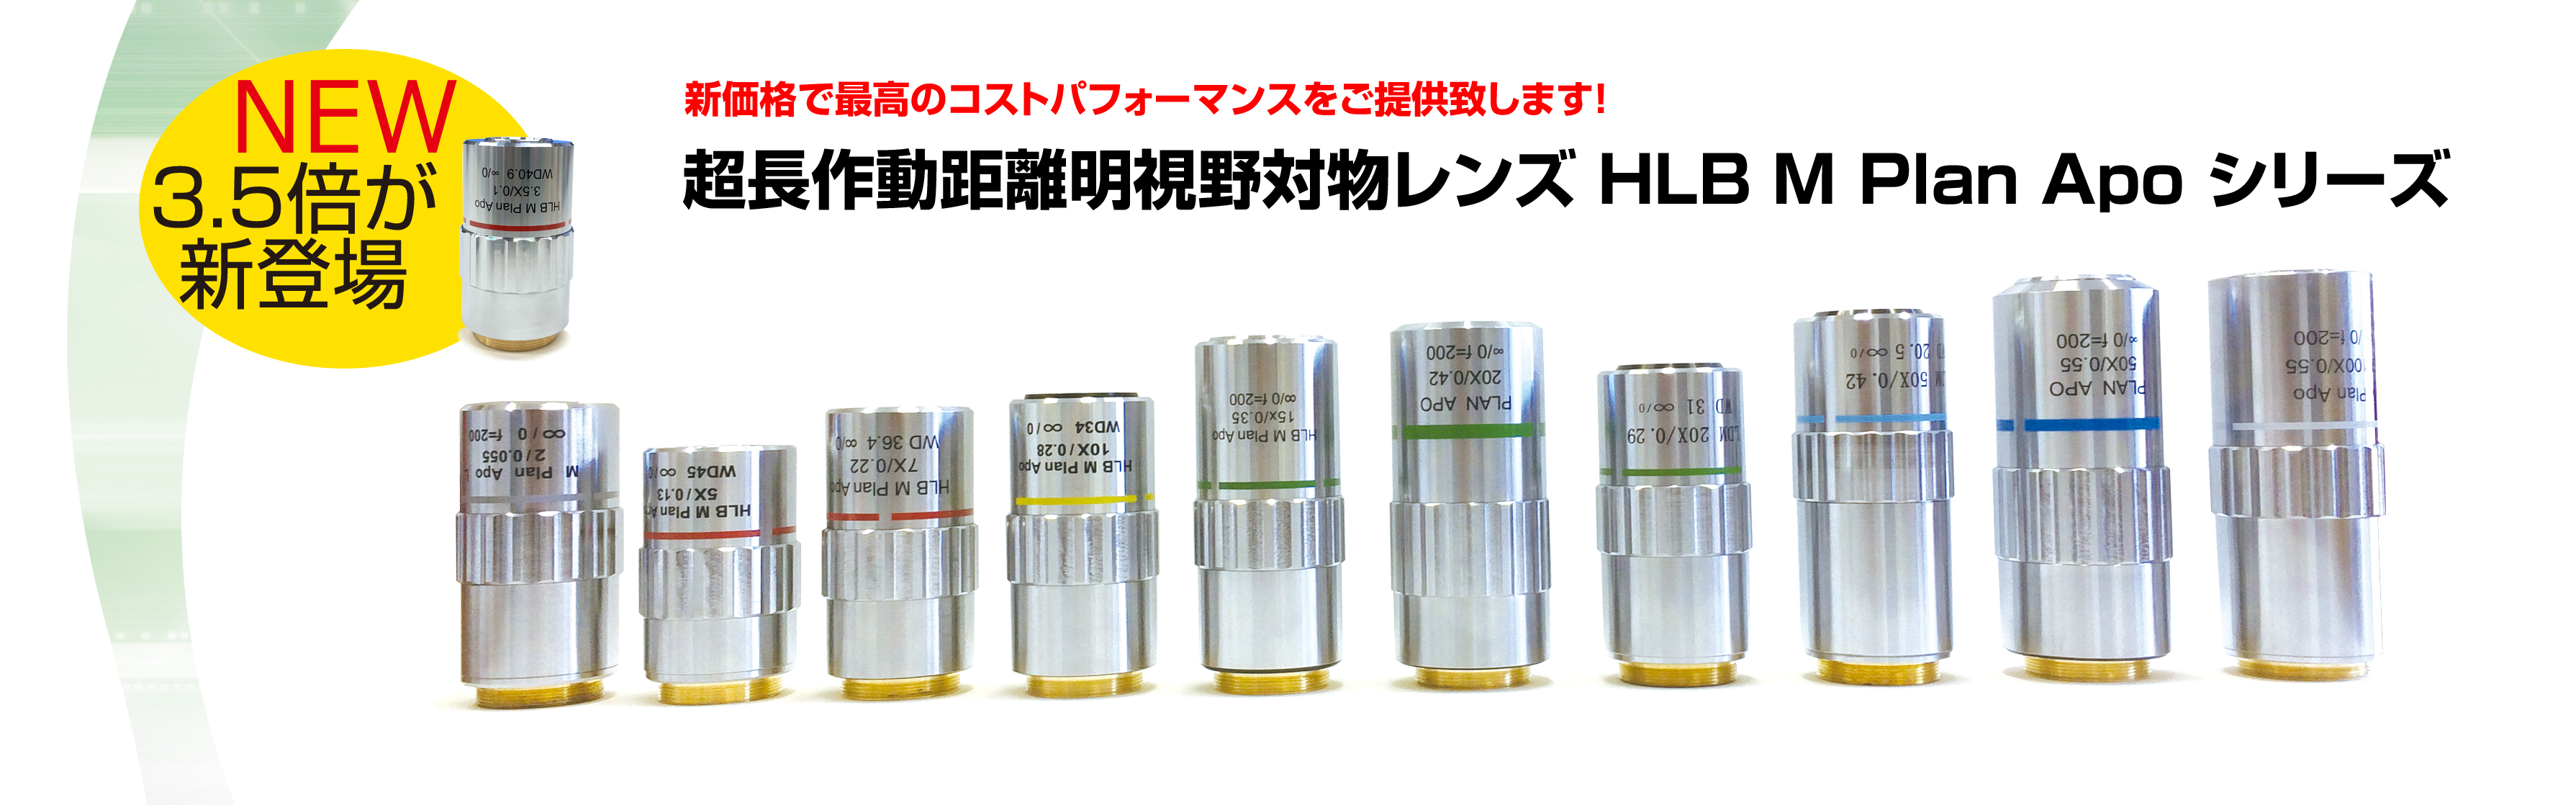 Hyper Long Working Distance Objective Lens(HLB M Plan Apo Series)